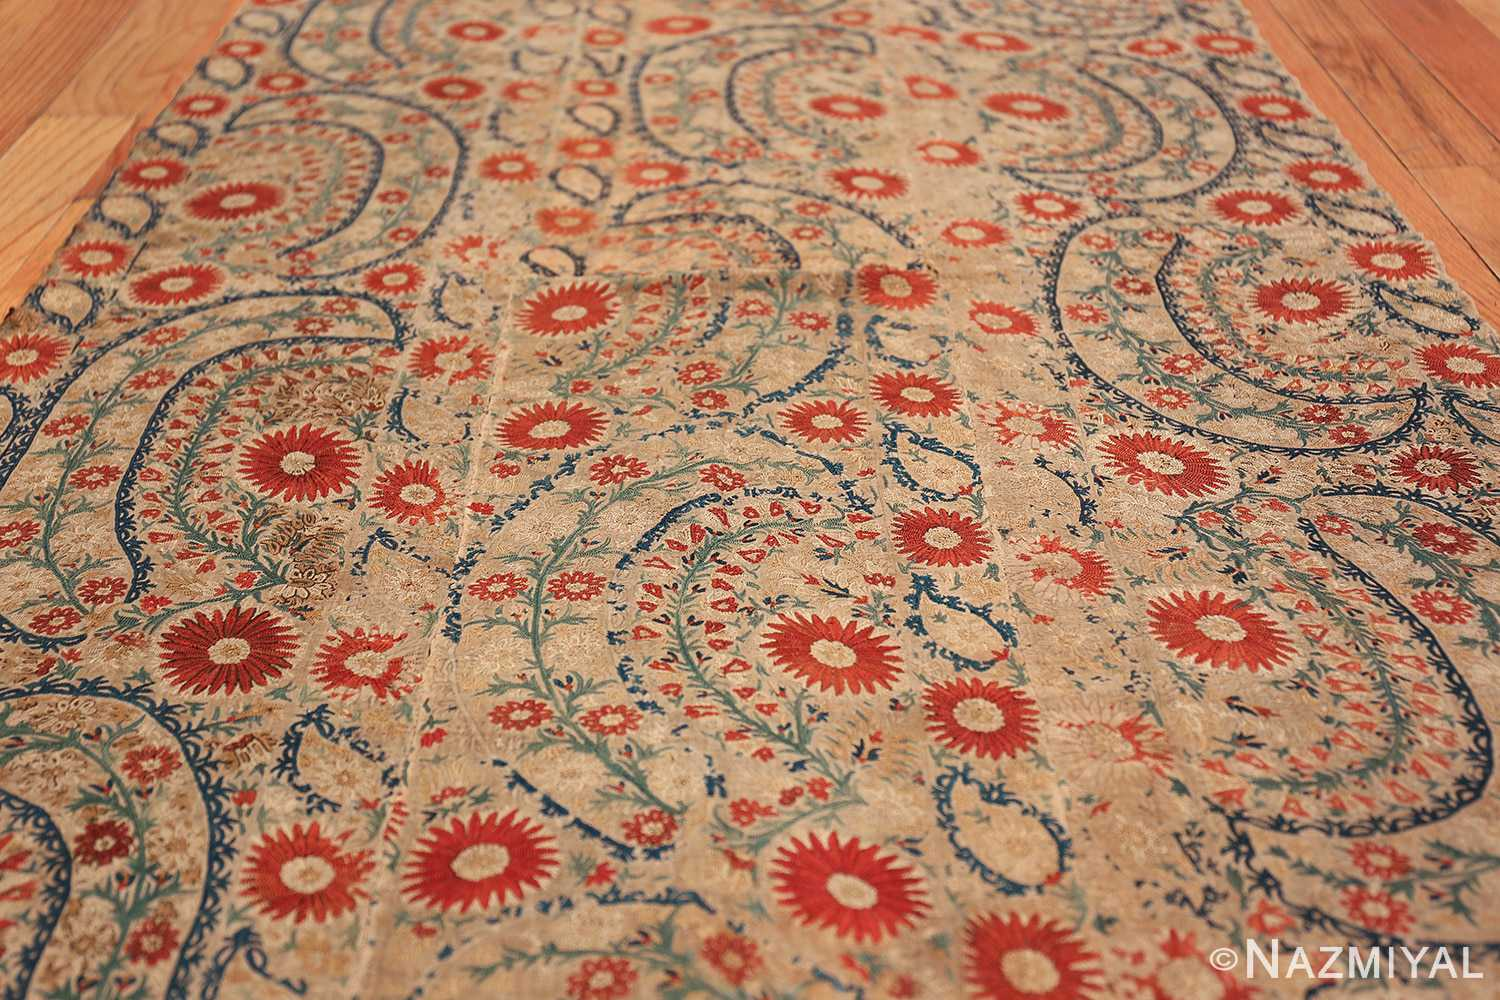 Antique 17th Century Ottoman Textile 41498 Field Design Low Nazmiyal